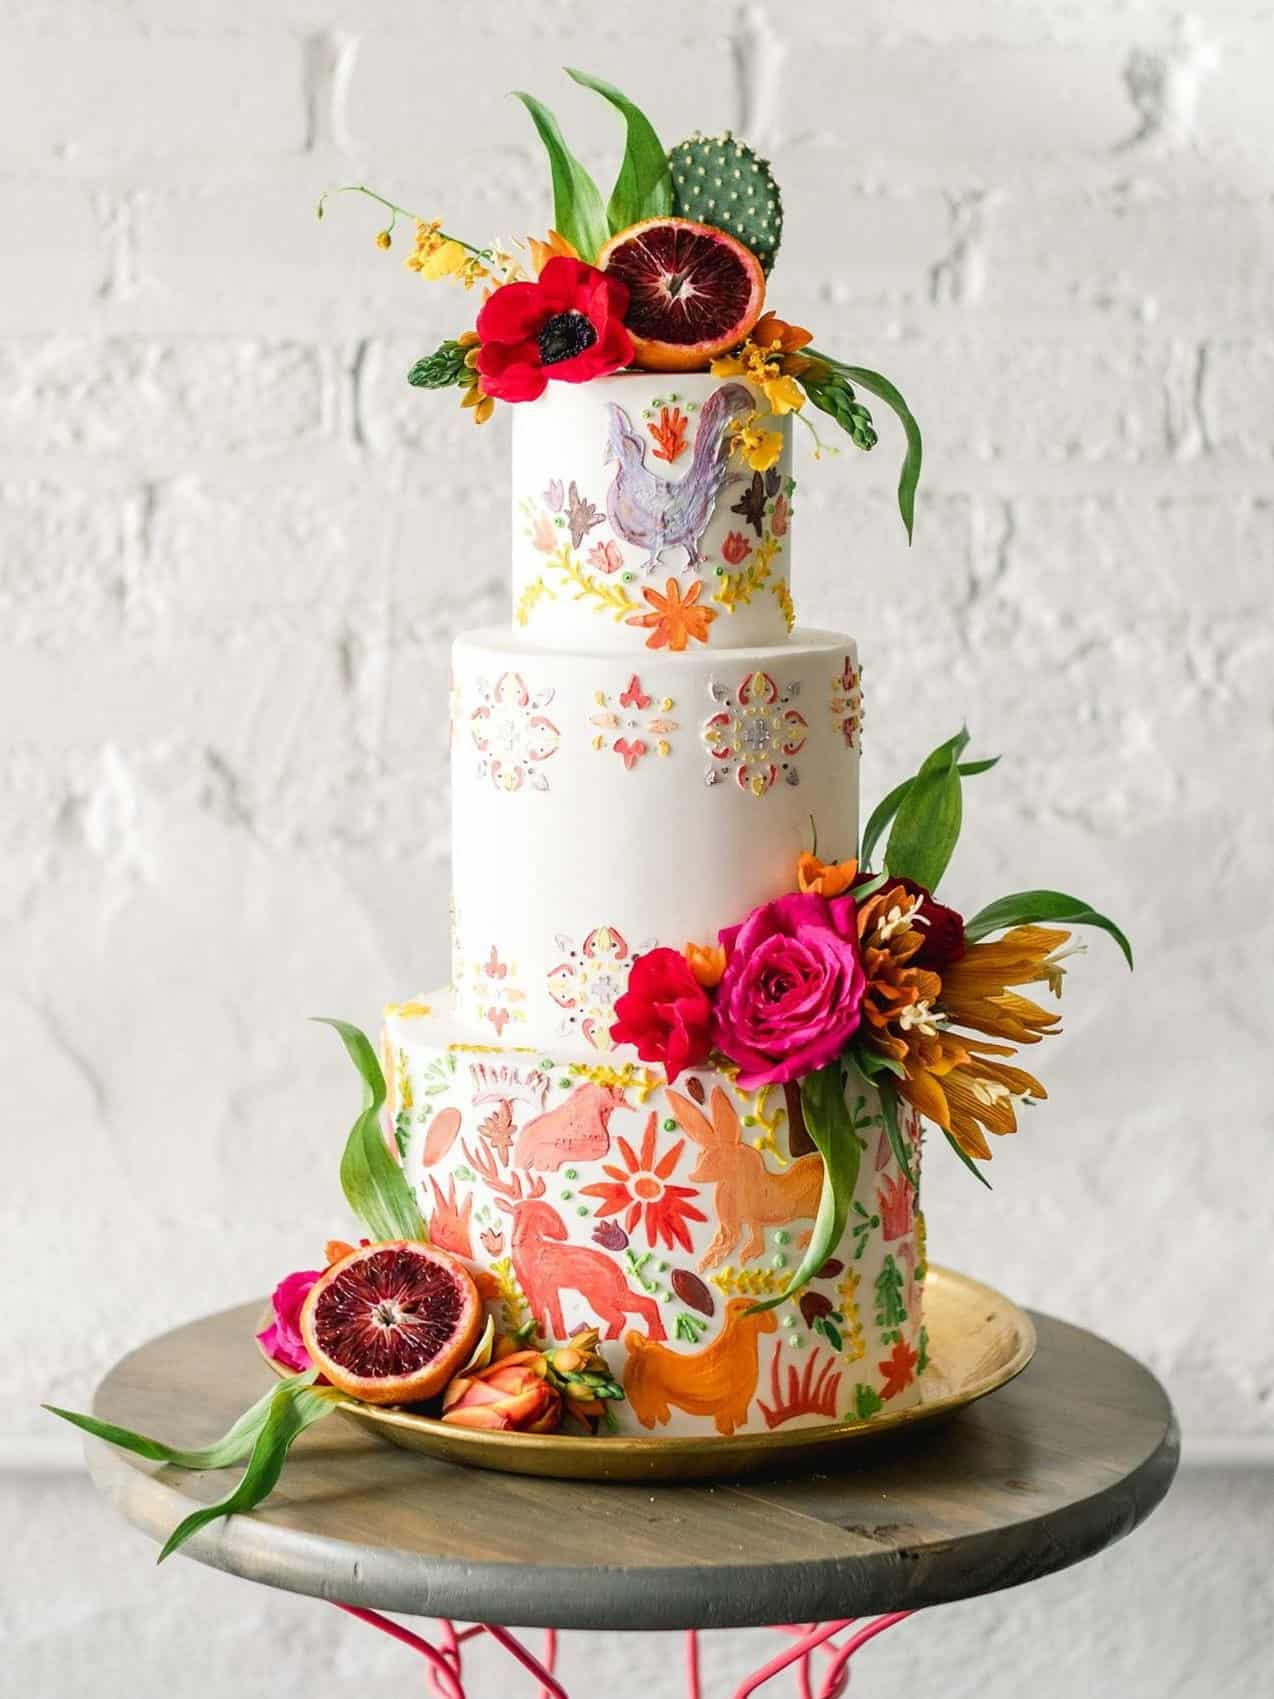 painted wedding cake with cactus flowers and fruits